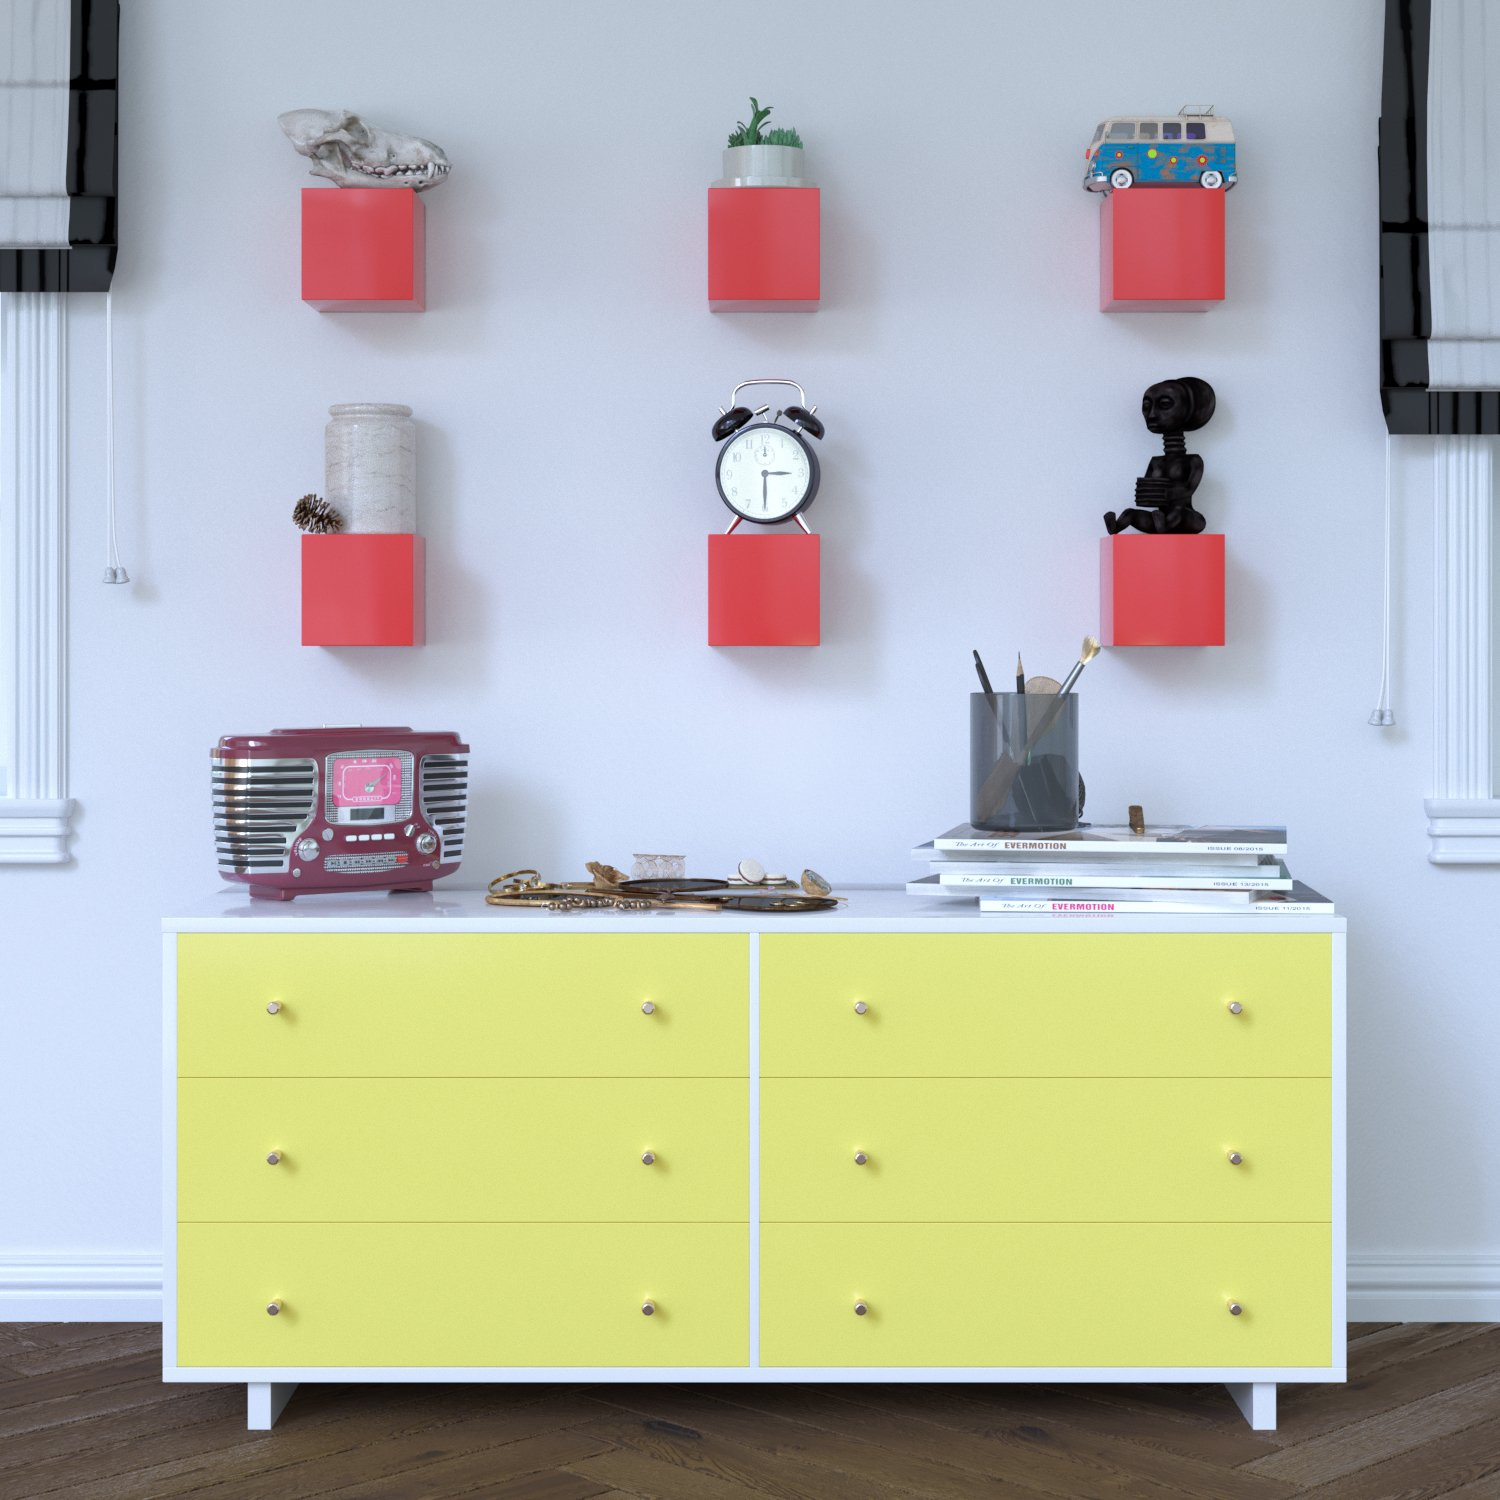 Brightmaison Living Room Decorative Square Wall Cubes Floating Block